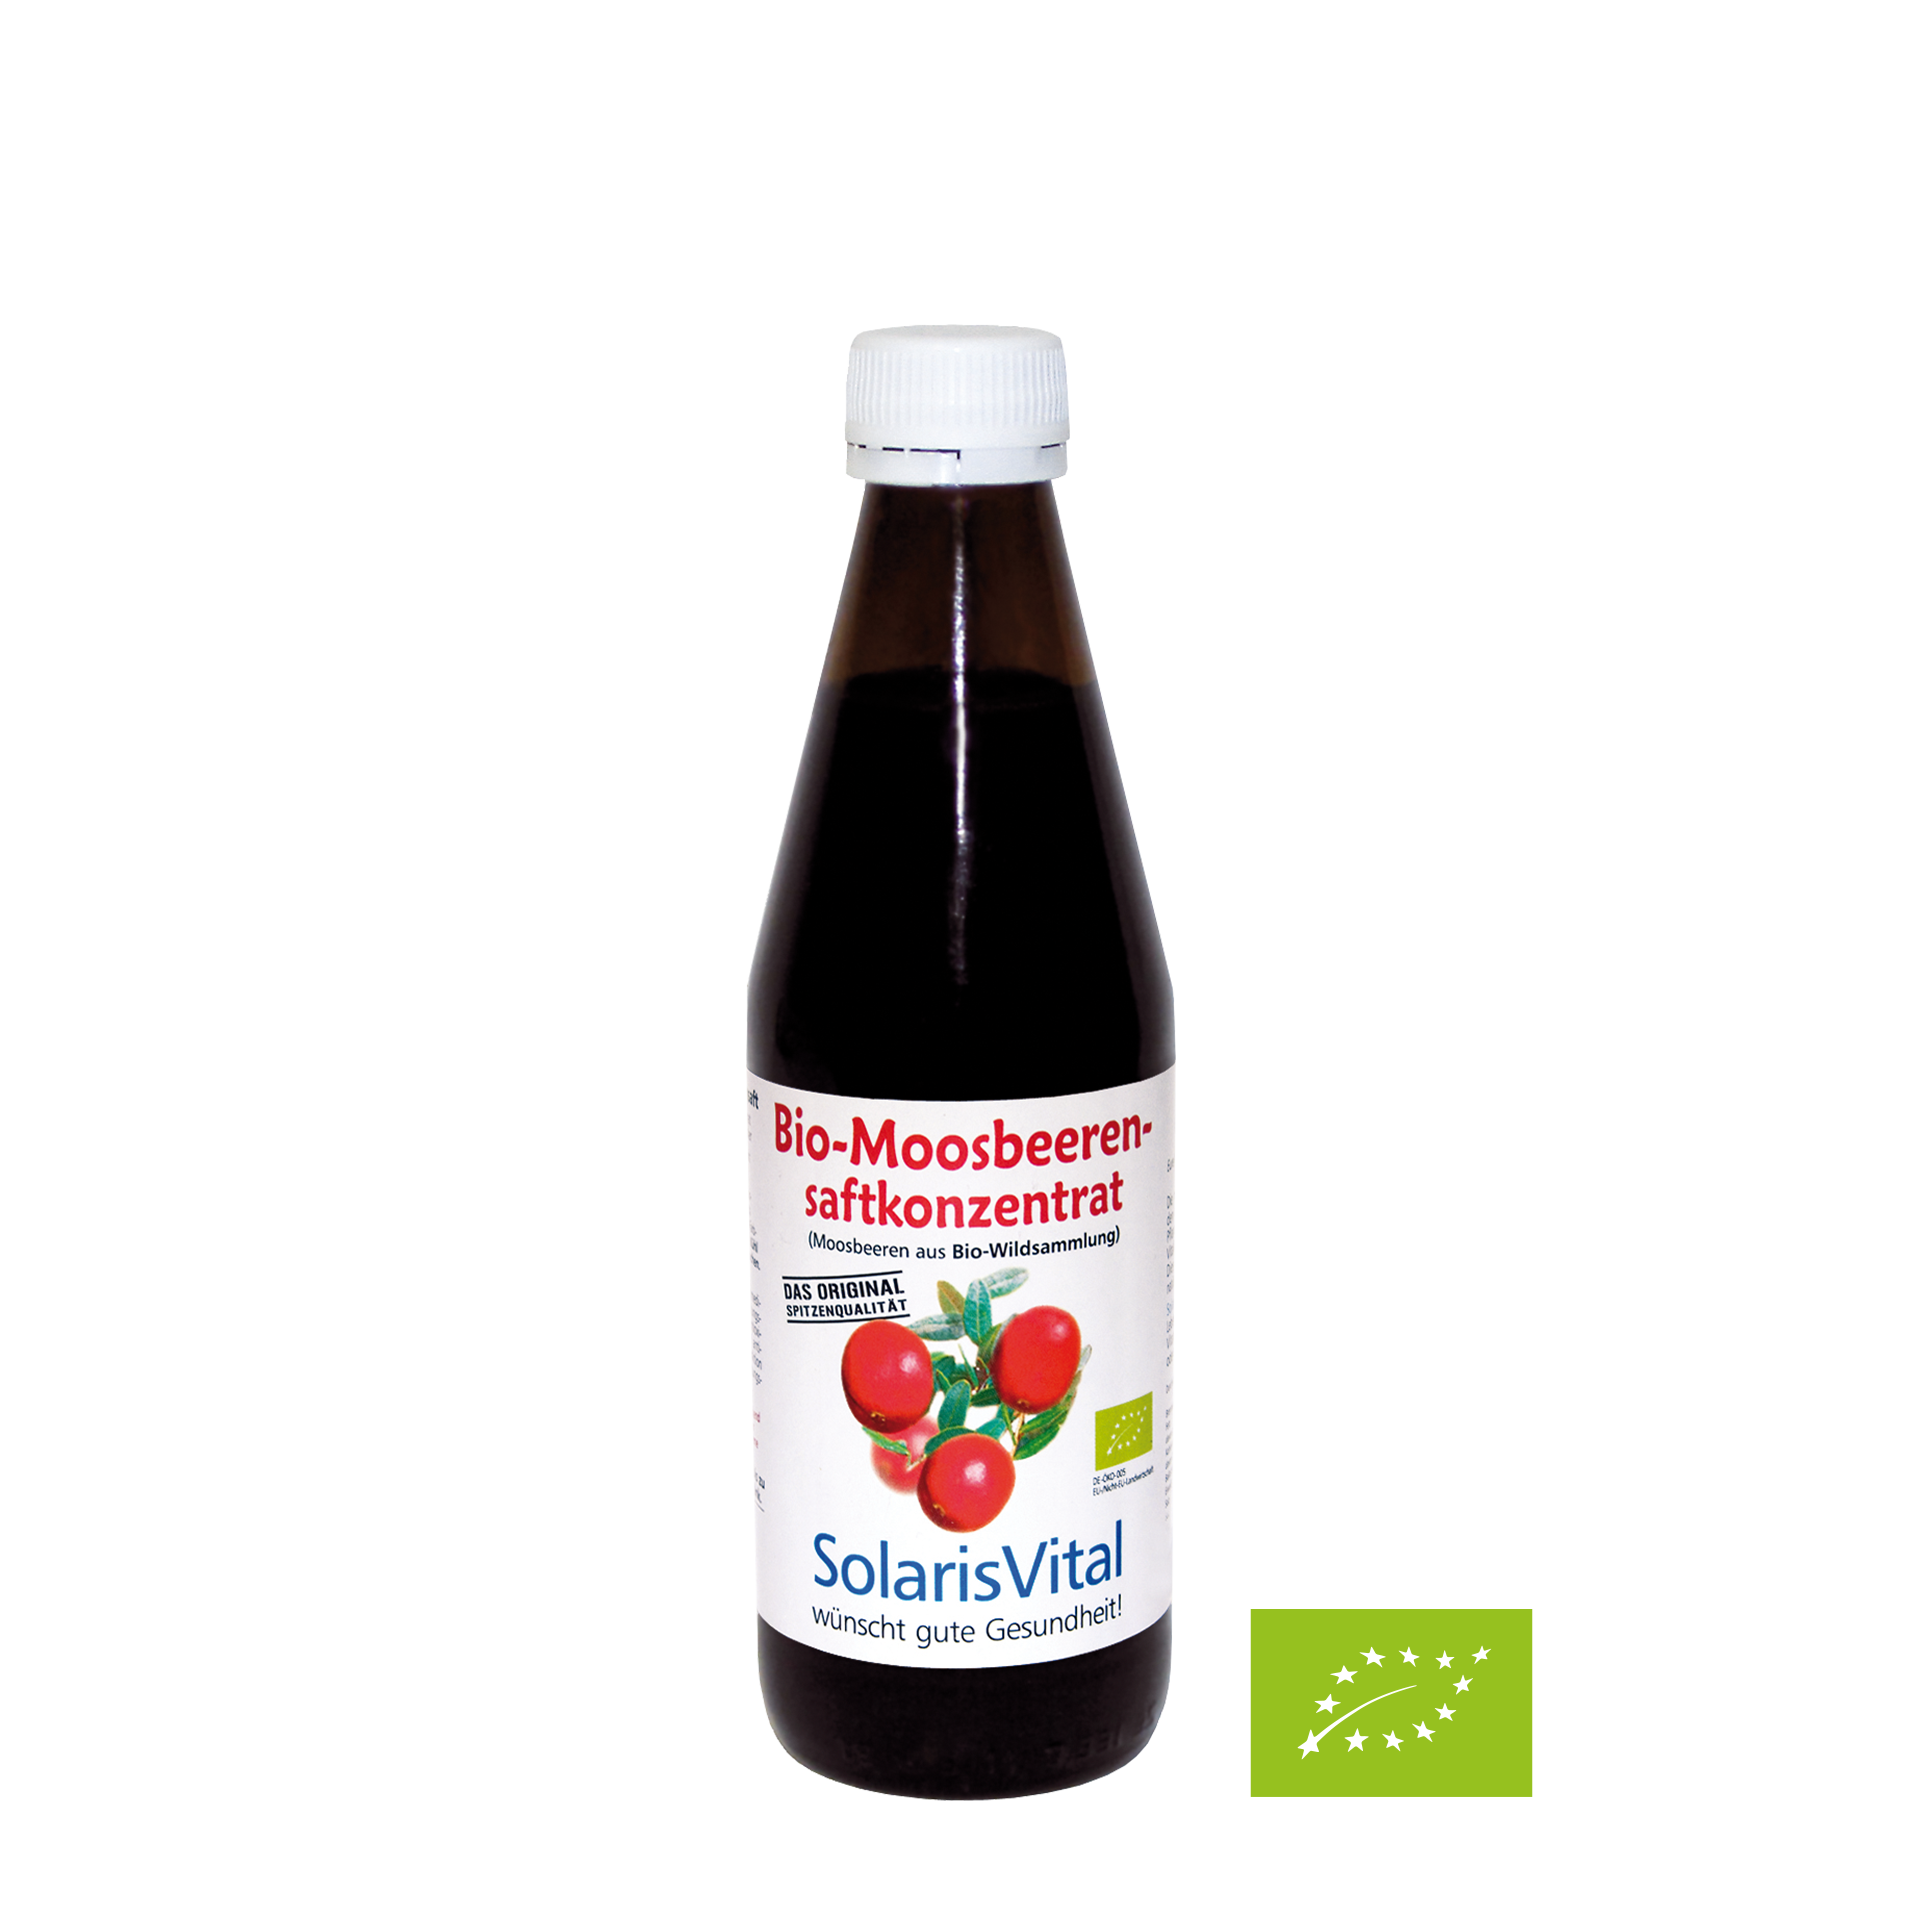 Bio-Moosbeerensaft-Konzentrat, 330 ml